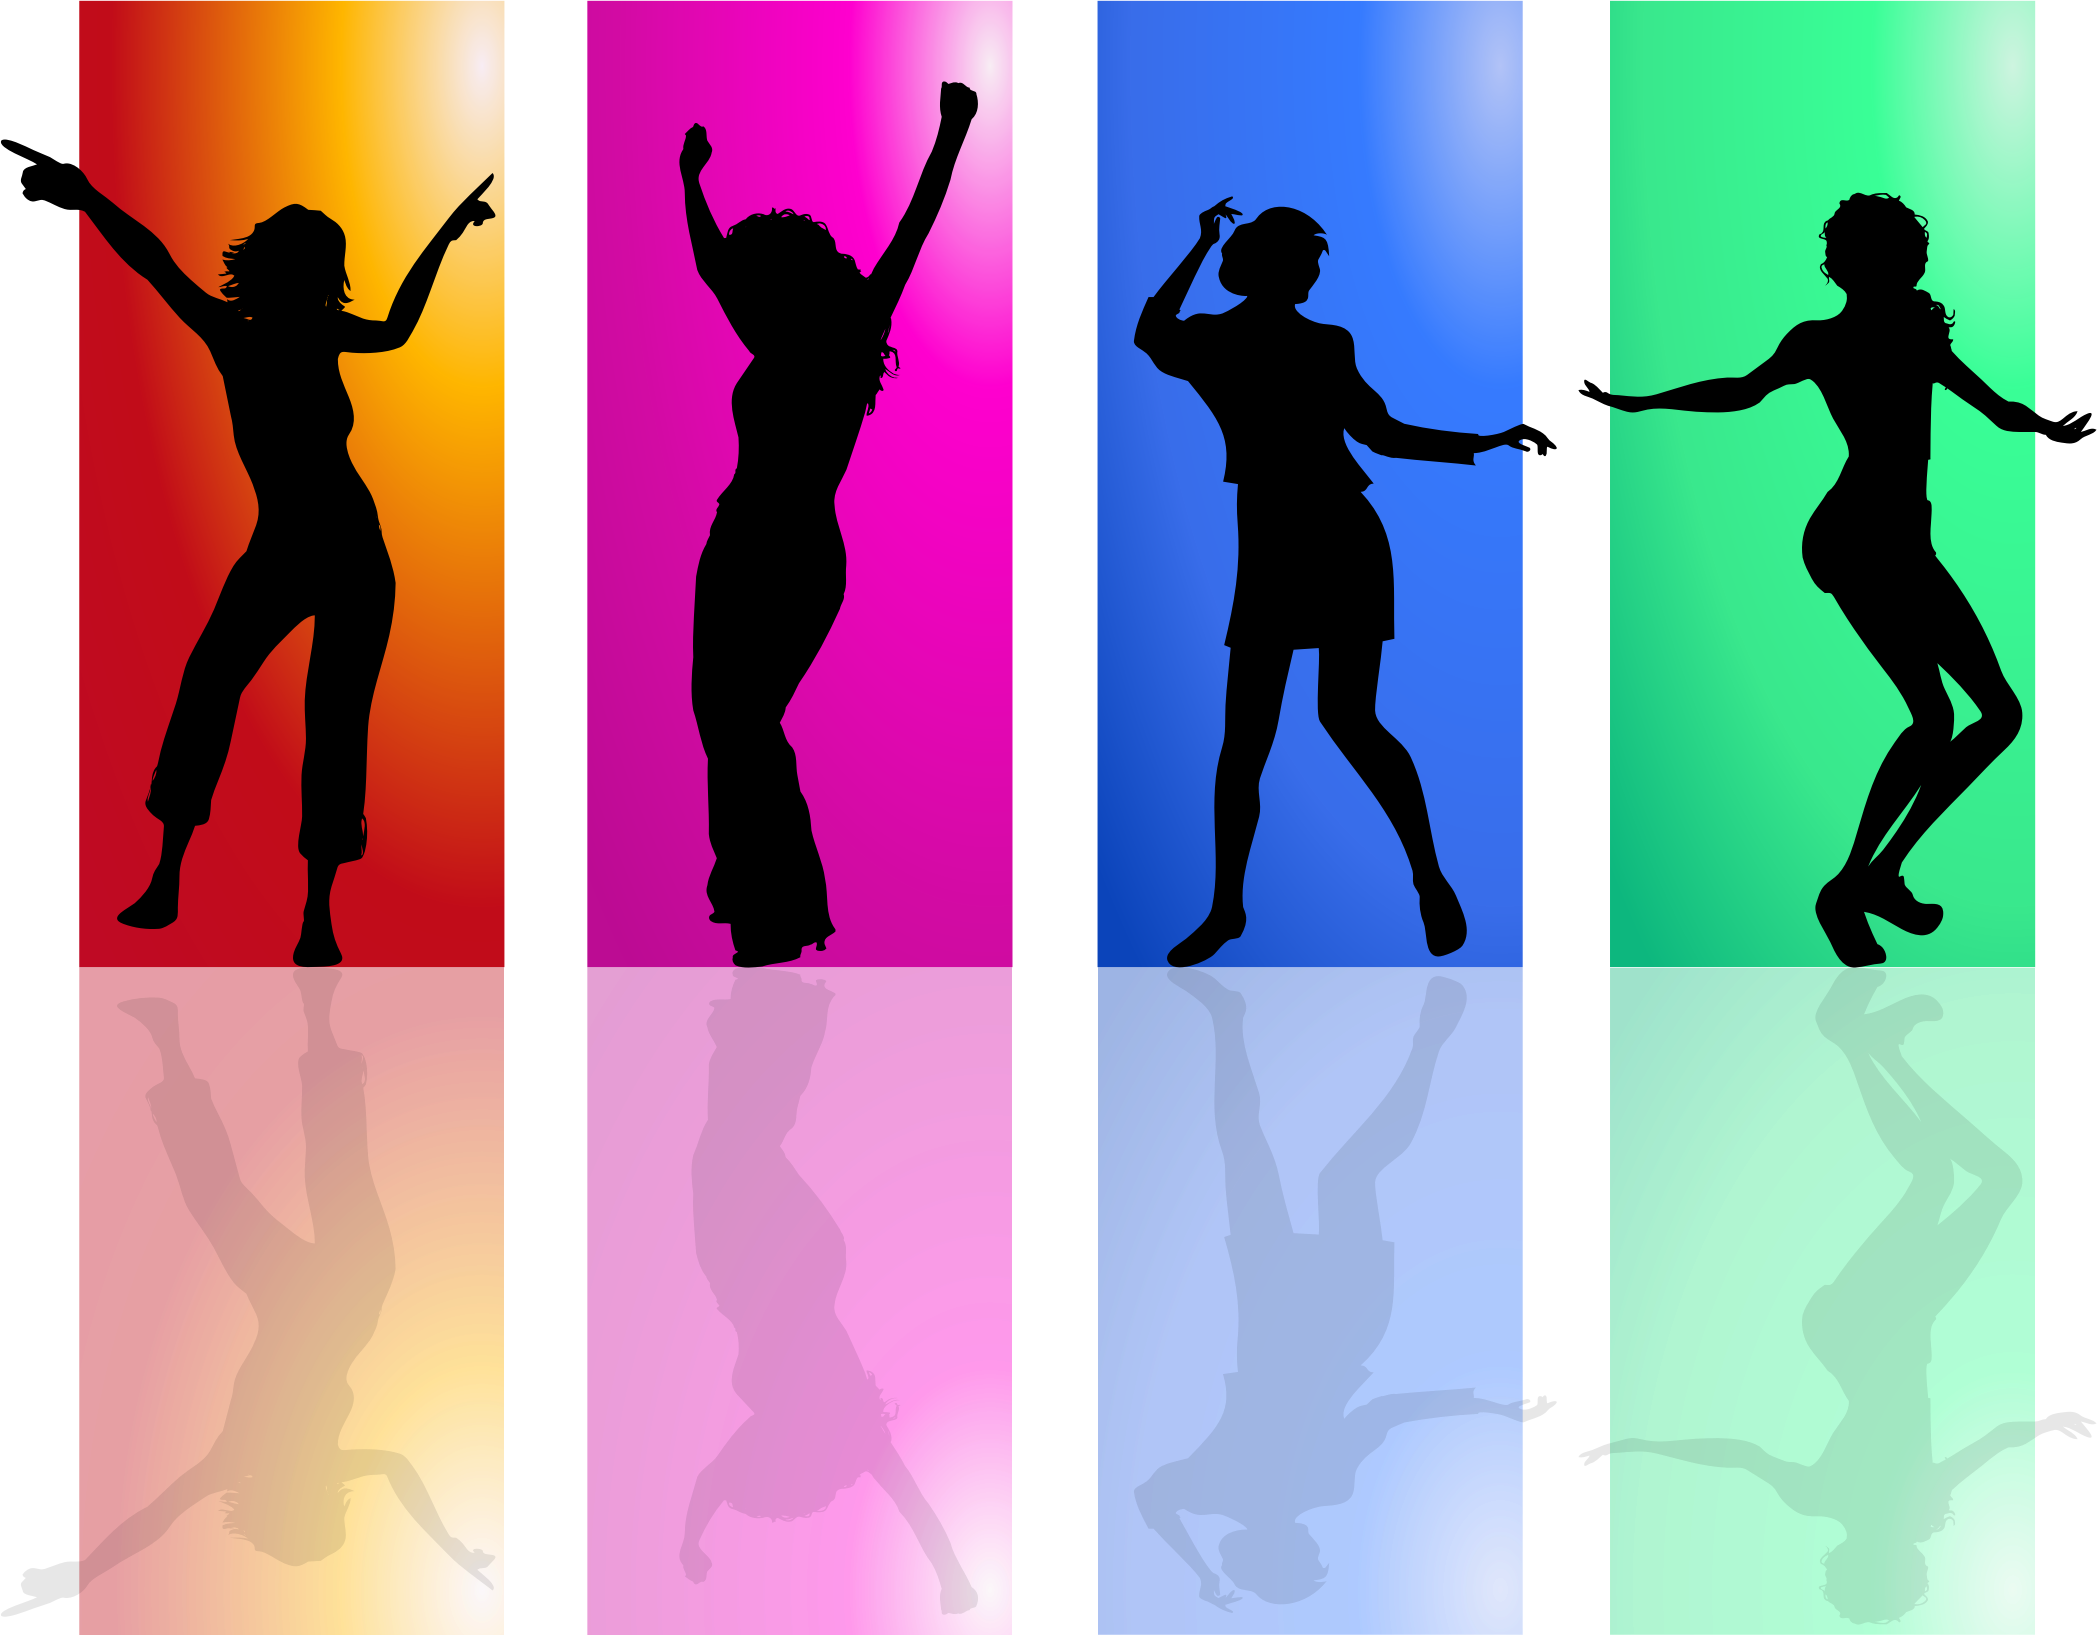 Dance clipart colorful. Dancing women silhouette by